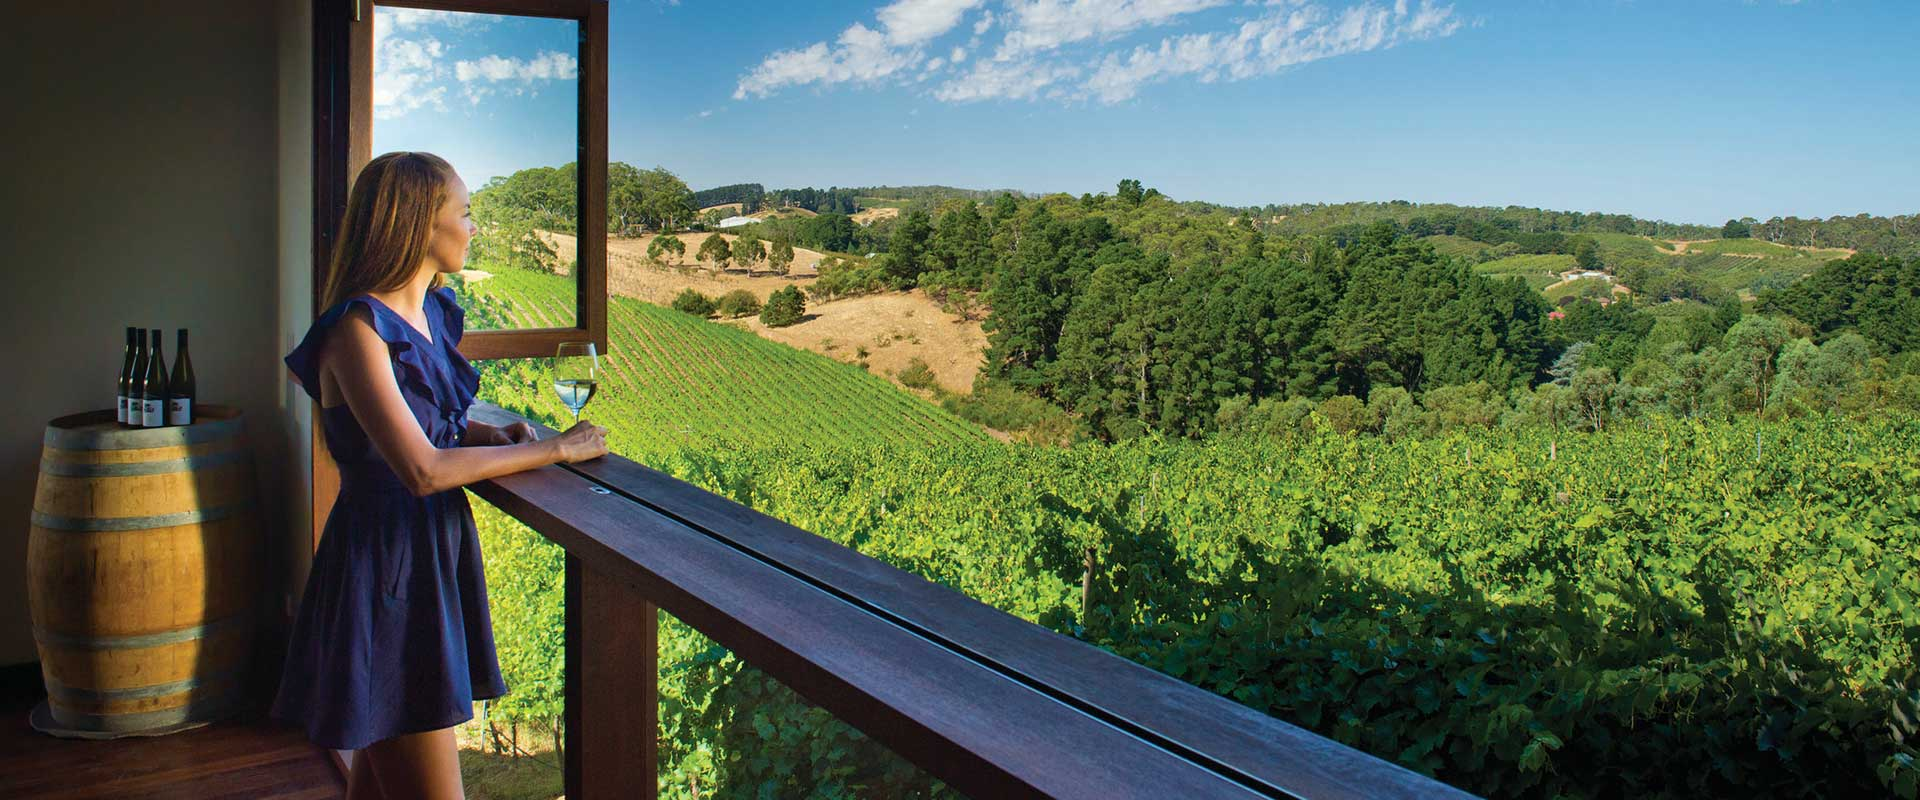 Mt Lofty Ranges Vineyard, Adelaide Hills